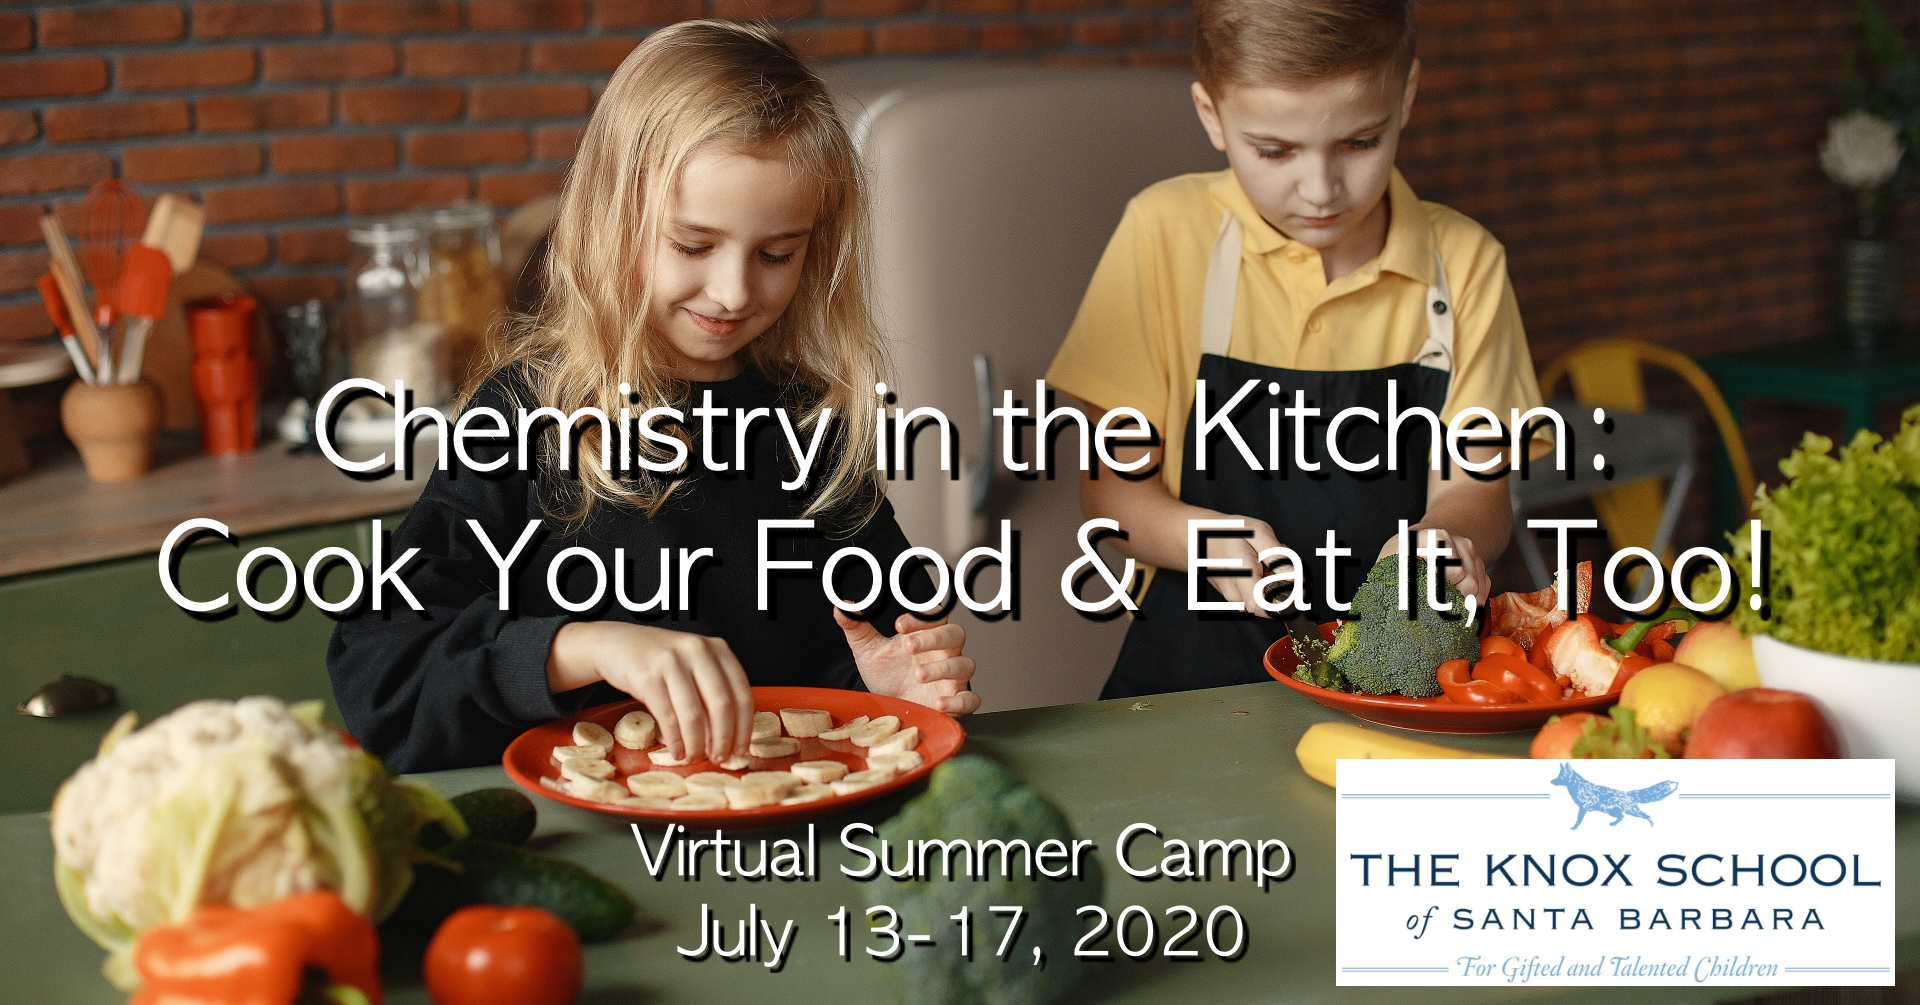 The Knox School of Santa Barbara is holding a virtual summer camp title=